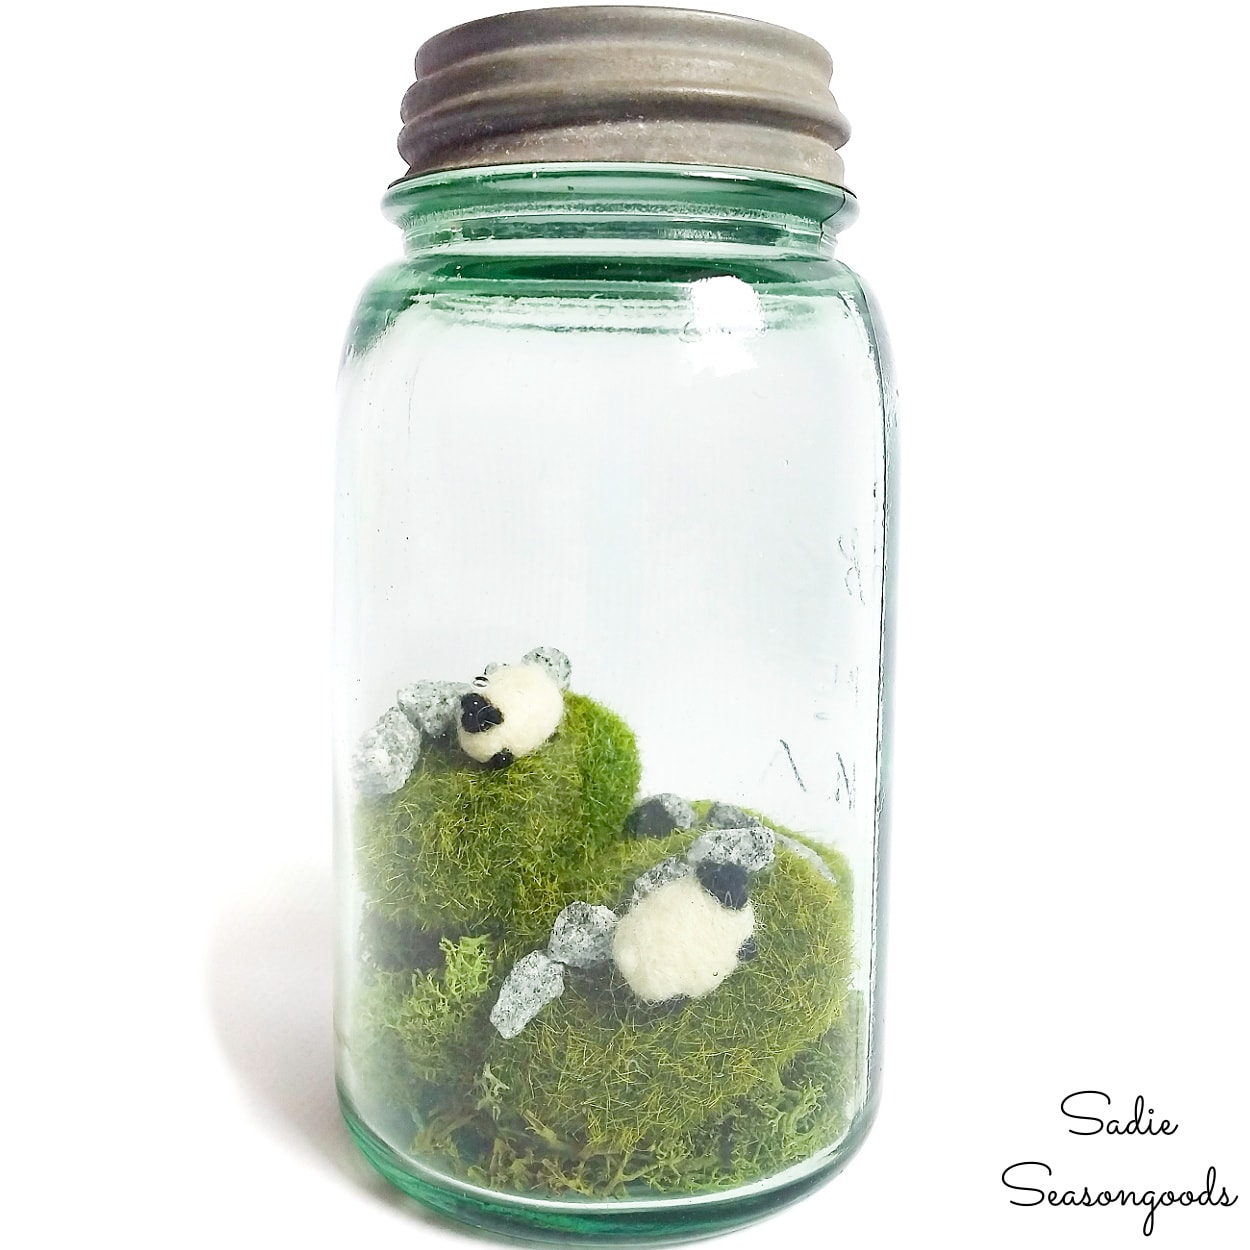 St Patrick's Day Activities For Kids - Irish Countryside Scene In A Jar